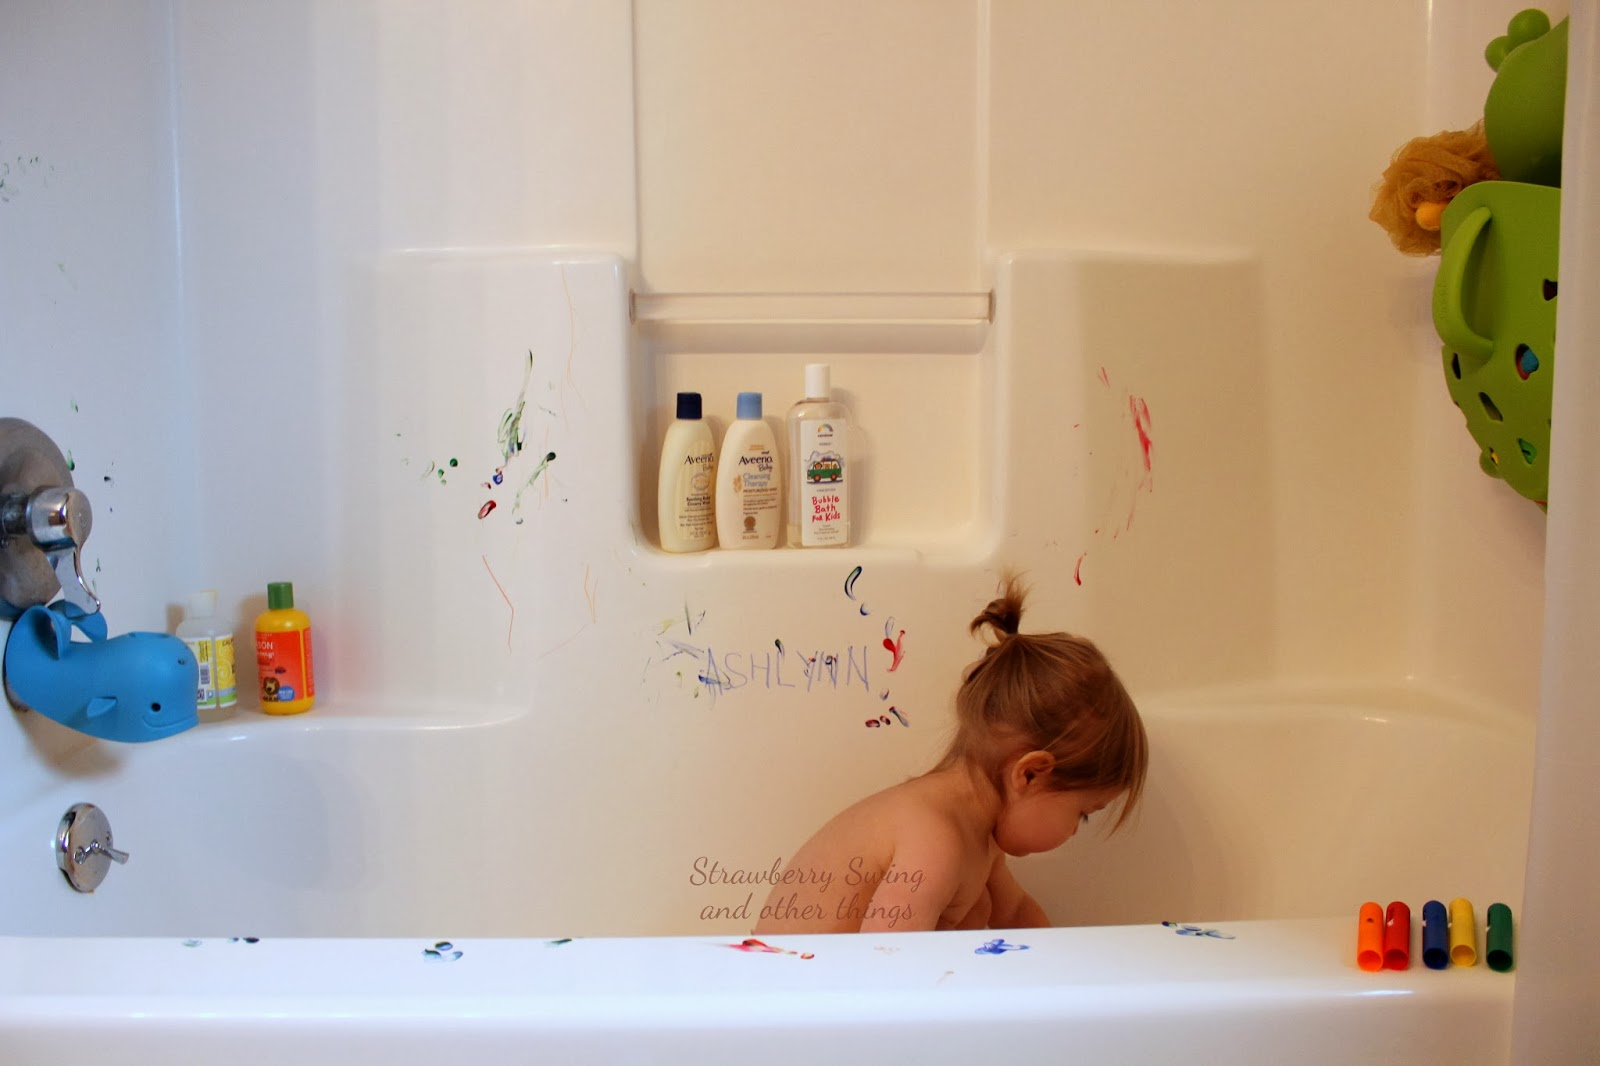 Strawberry Swing and other things: Rub a Dub Dub - Paintin\' the Tub